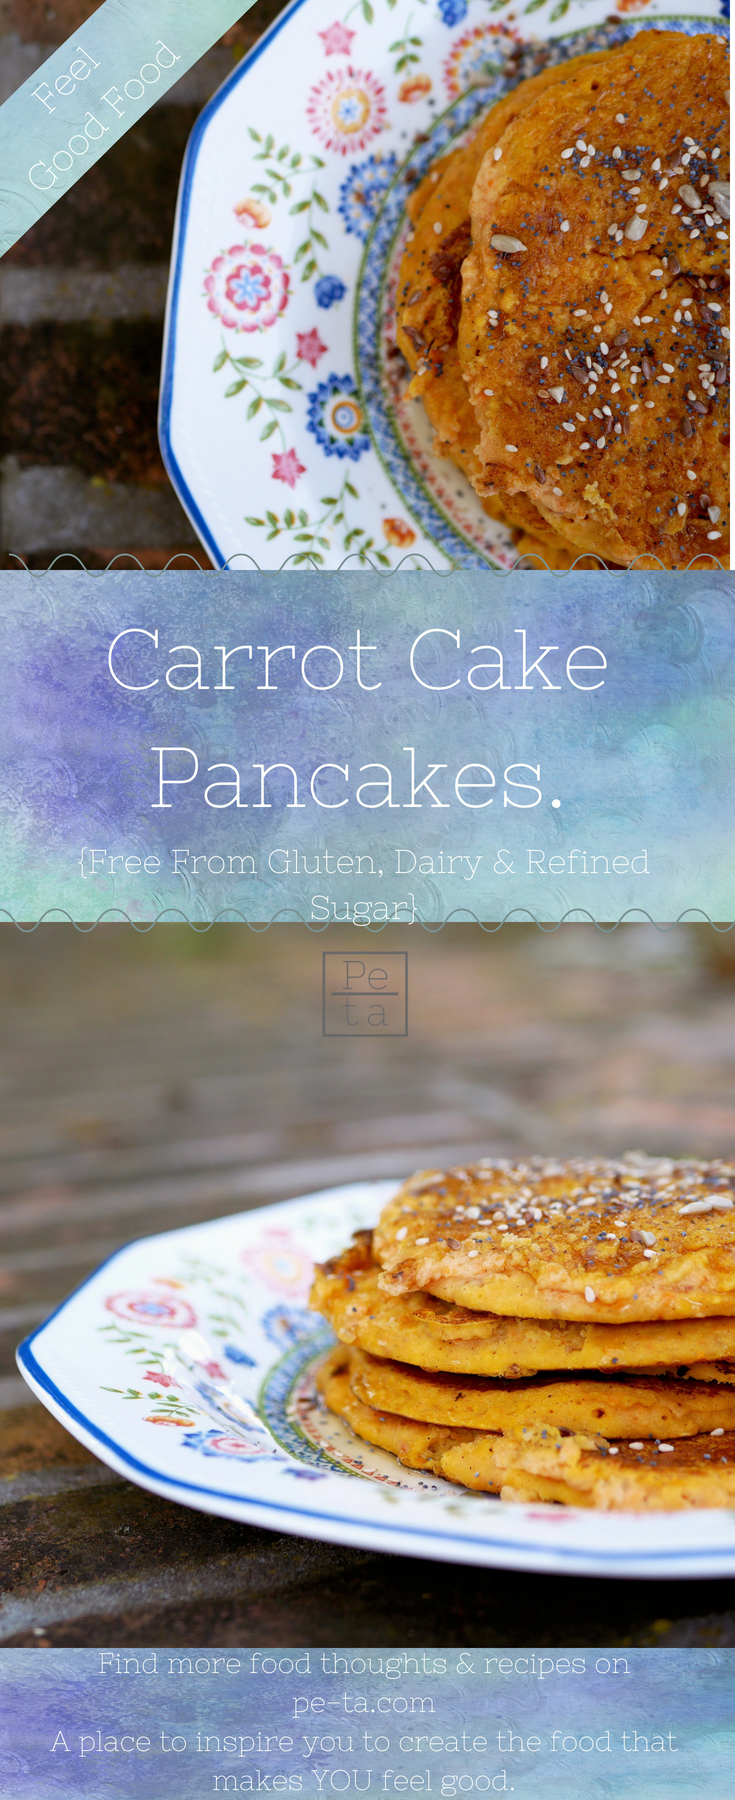 Free From Carrot Cake Pancakes